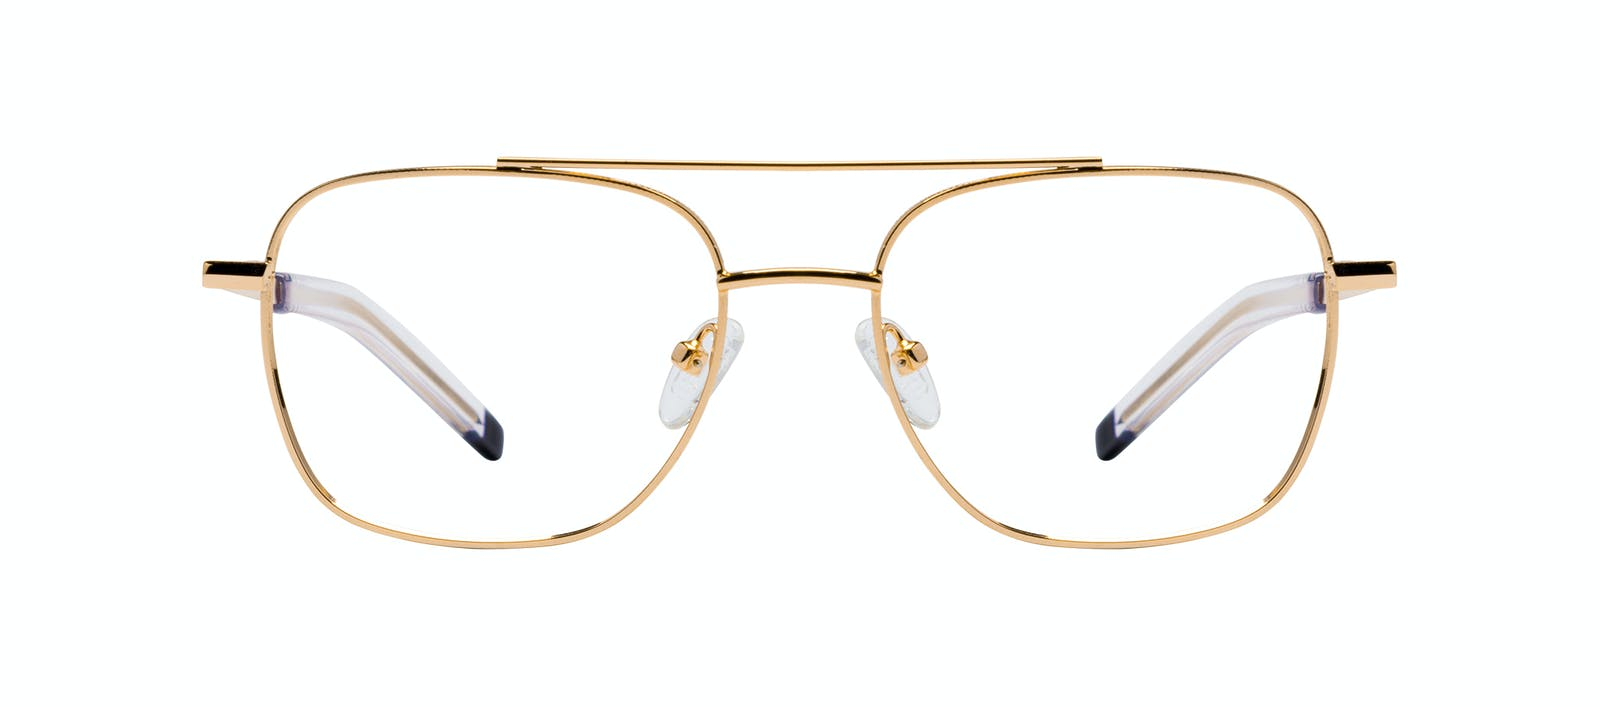 9a7f43b20d4 Affordable Fashion Glasses Aviator Eyeglasses Men Drift Gold Front